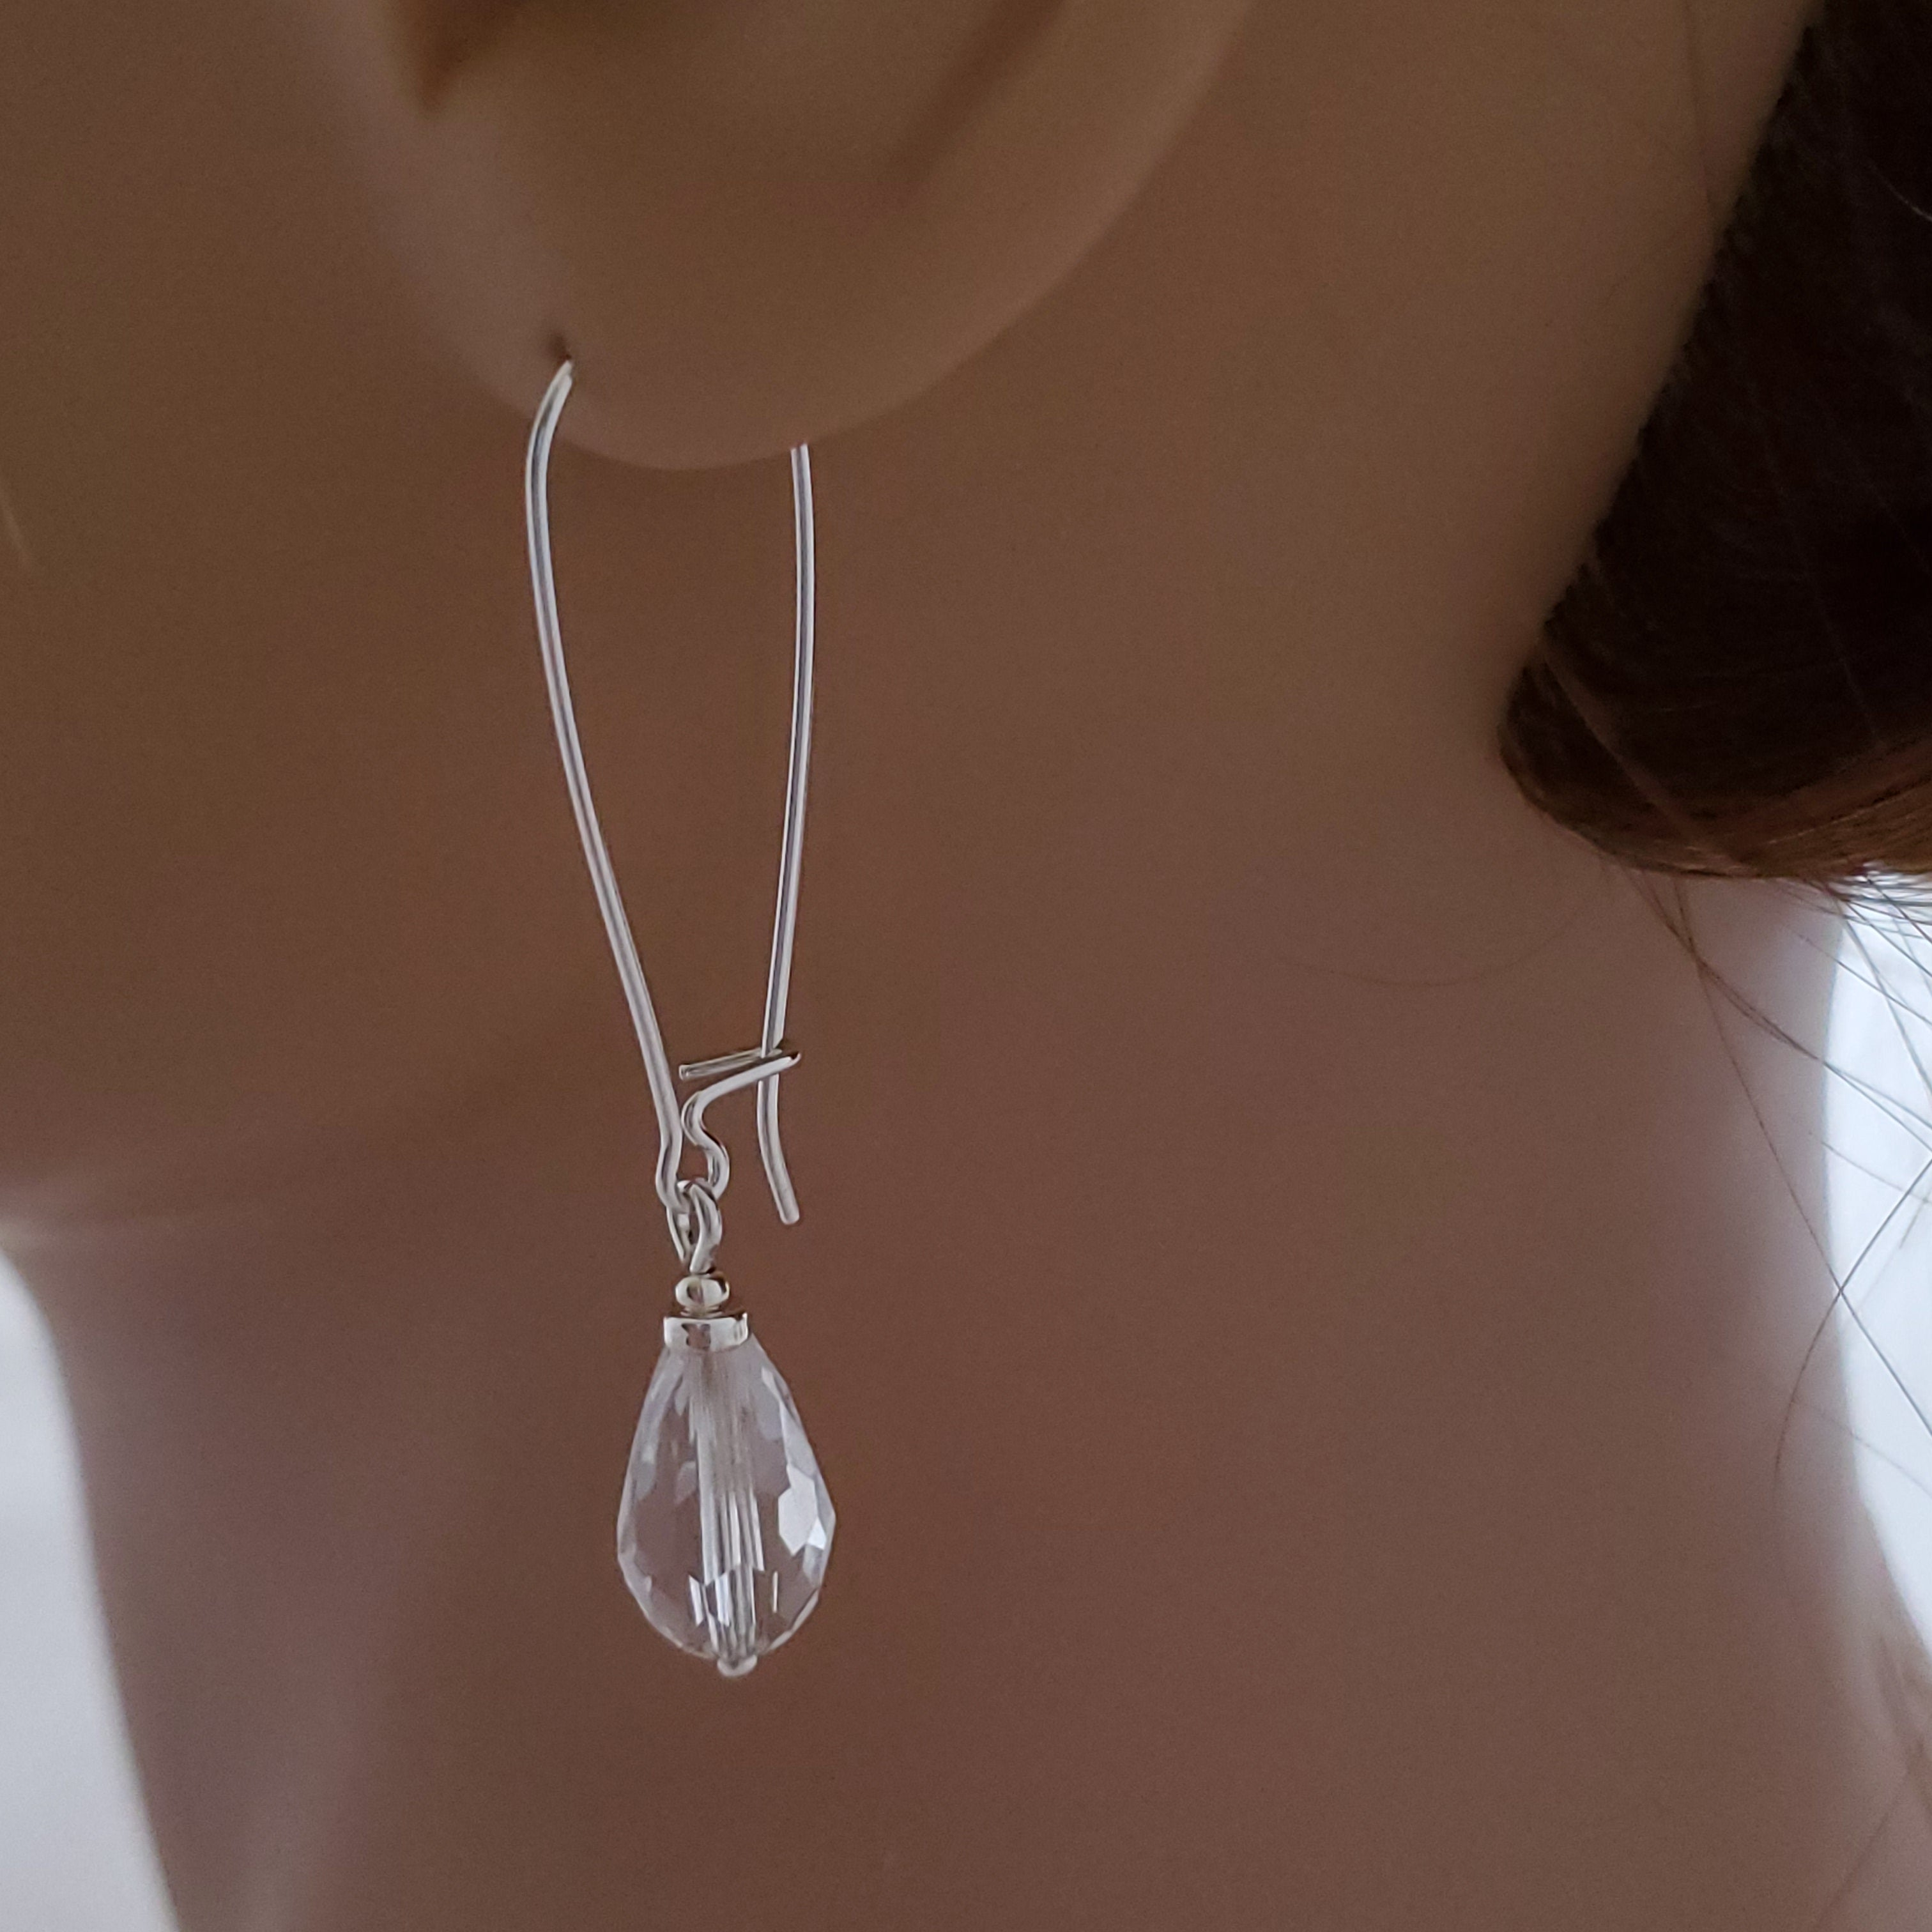 displayed on mannequin, clear faceted crystal long dangle earrings